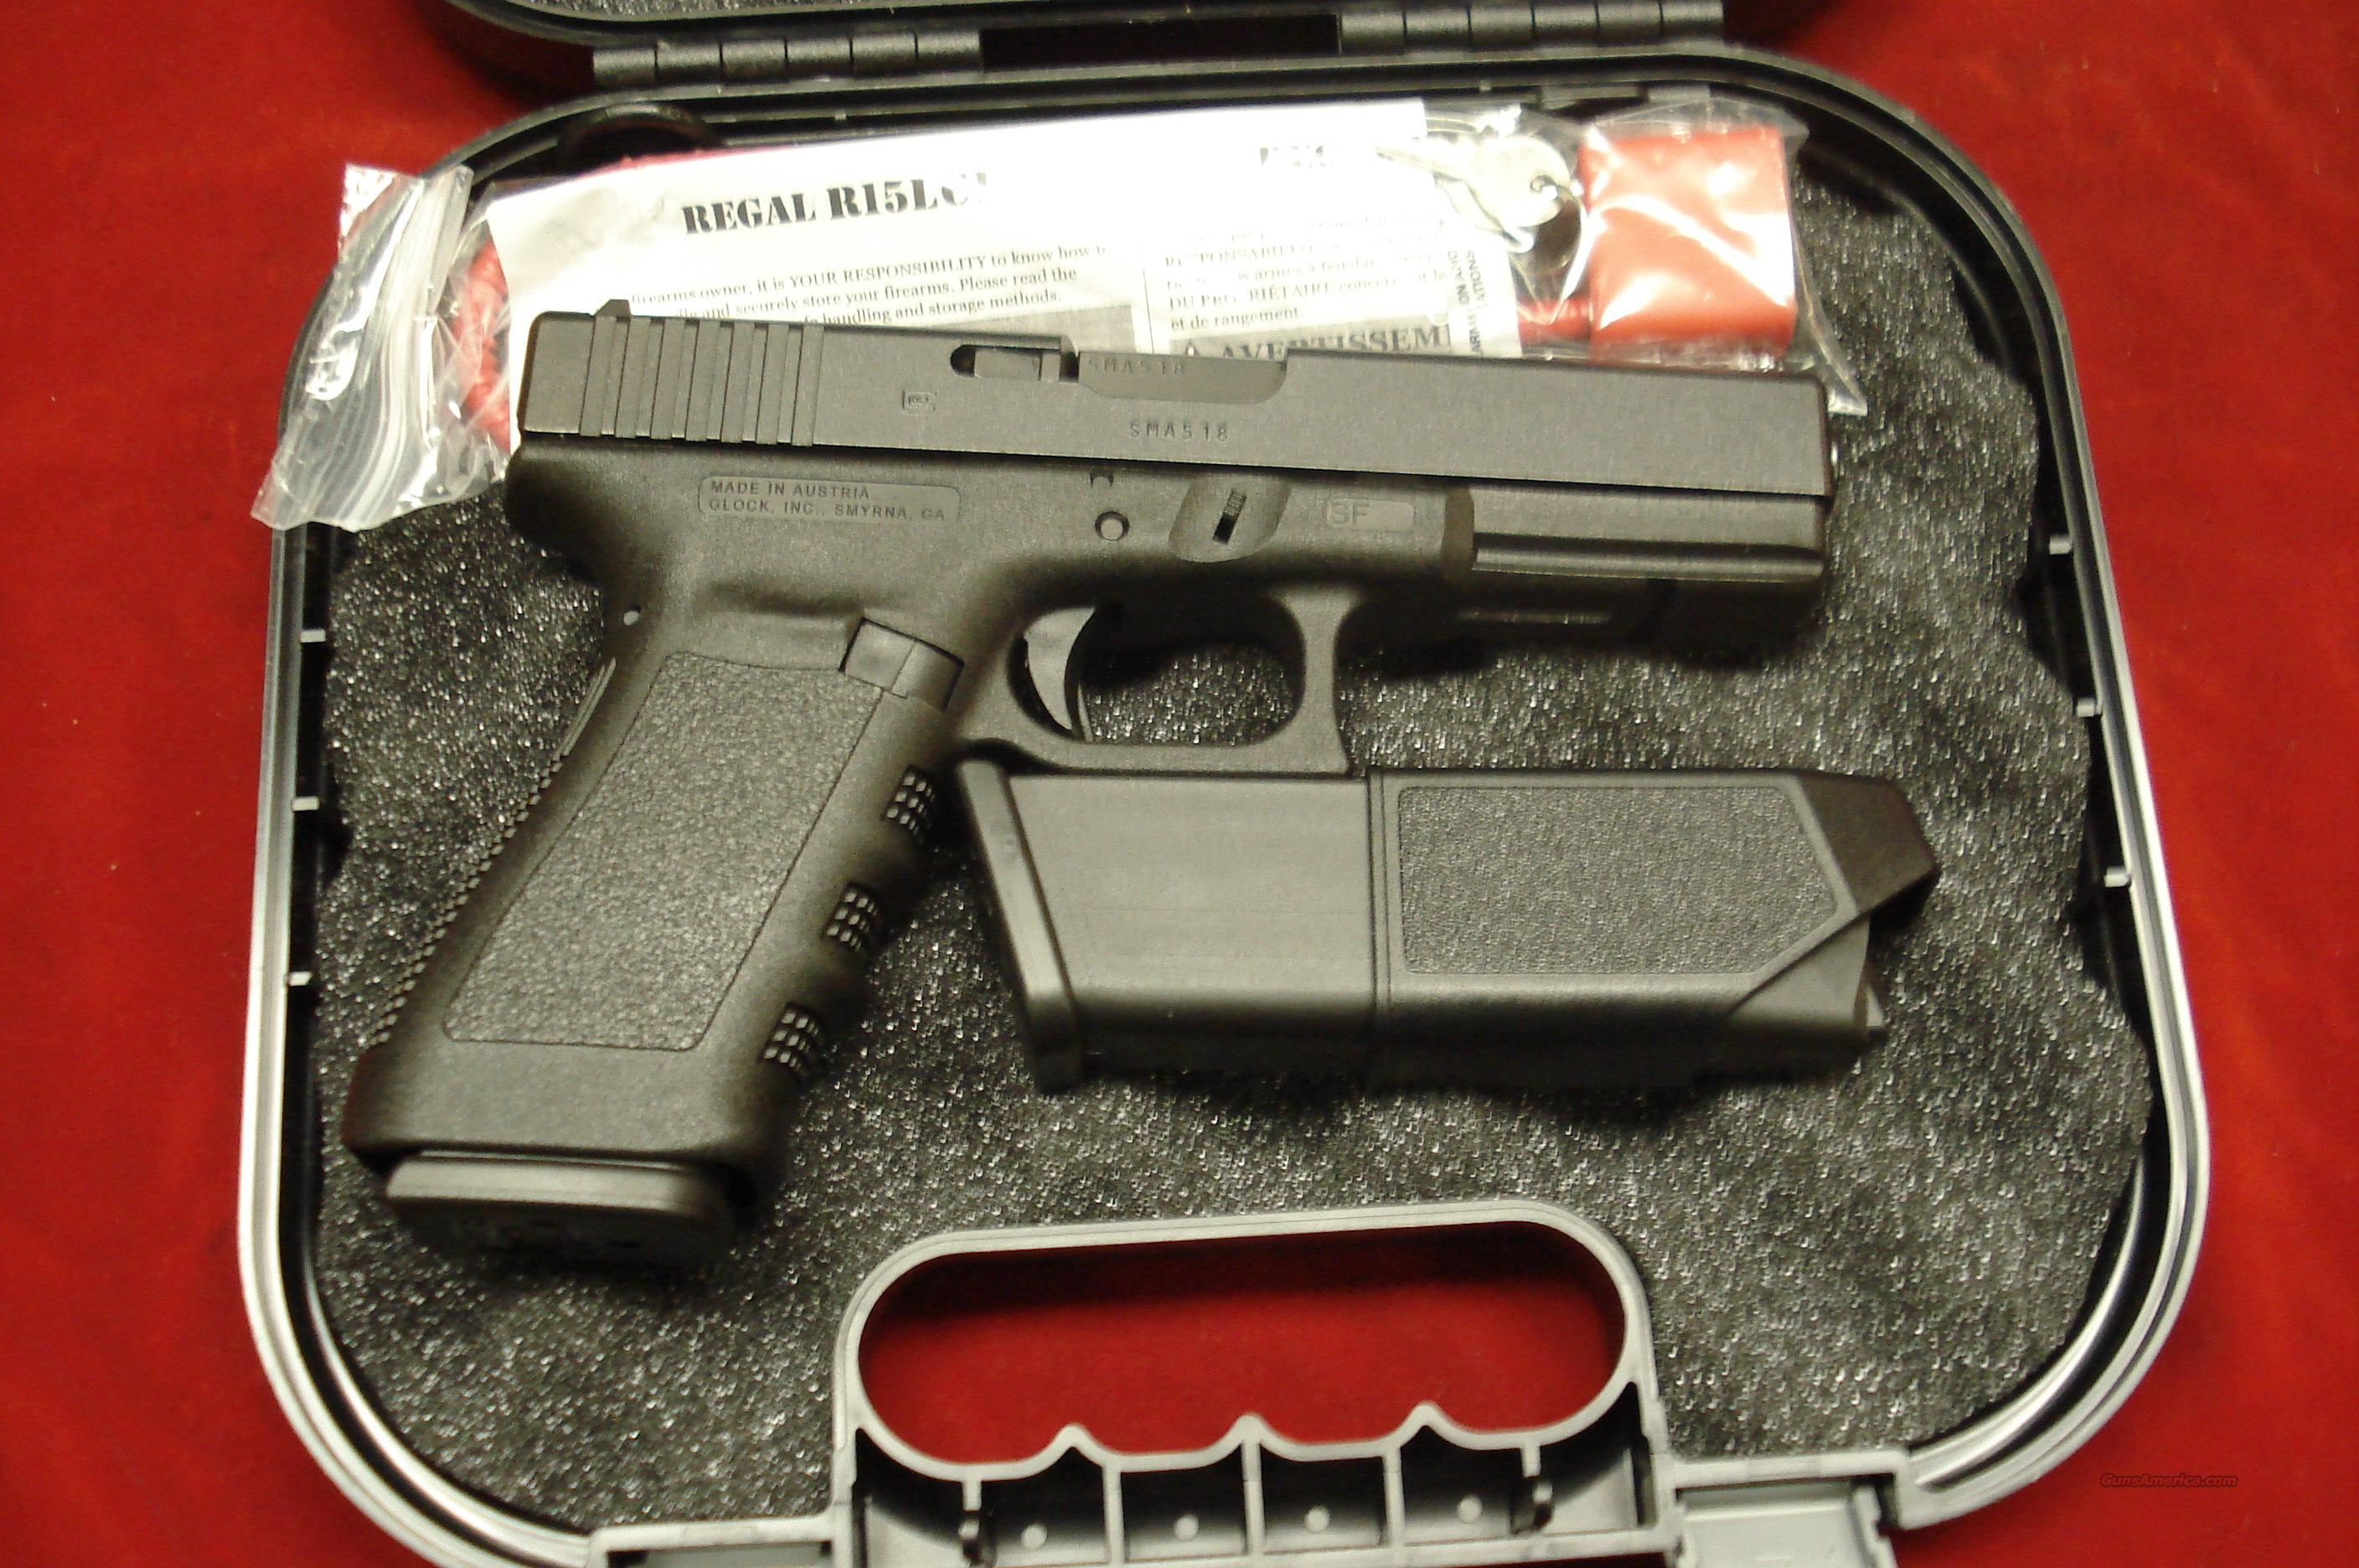 GLOCK MODEL 20SF (SLIM FRAME) 10MM HIGH CAP NEW  Guns > Pistols > Glock Pistols > 20/21